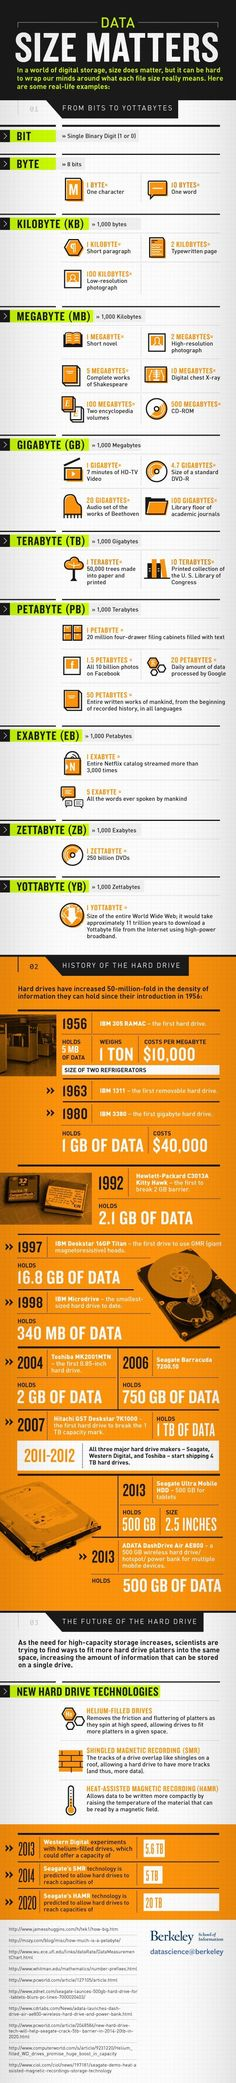 Data Size Matters!Most of you are working on your computer all day long, save what you have created and dont think much about it after that. Well for starters, did you know that just 5 MB of hard drive space cost $10,000 back in 1956????